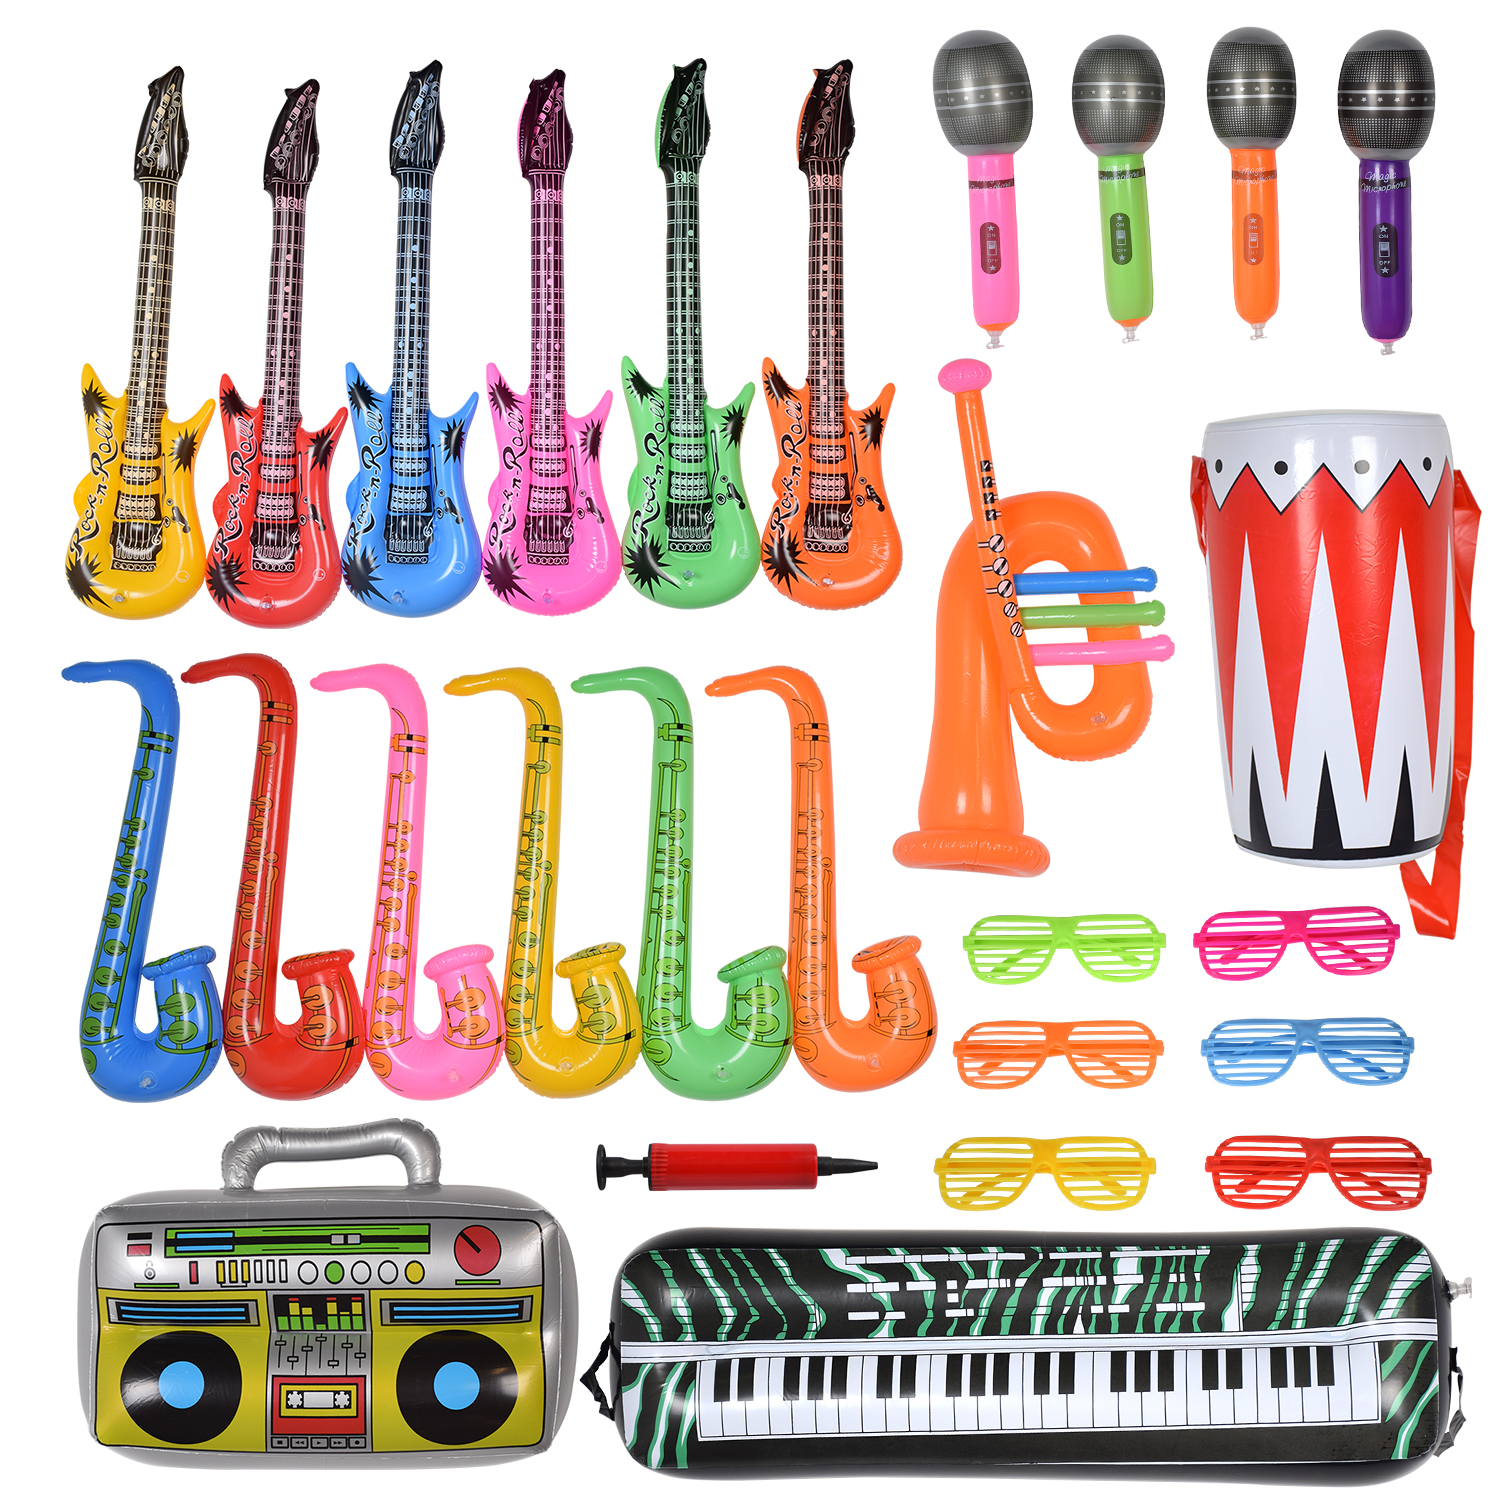 Max Fun 27PCS Random Color Inflatable Party Props Instrument Inflate Rock Band Assortment for Concer